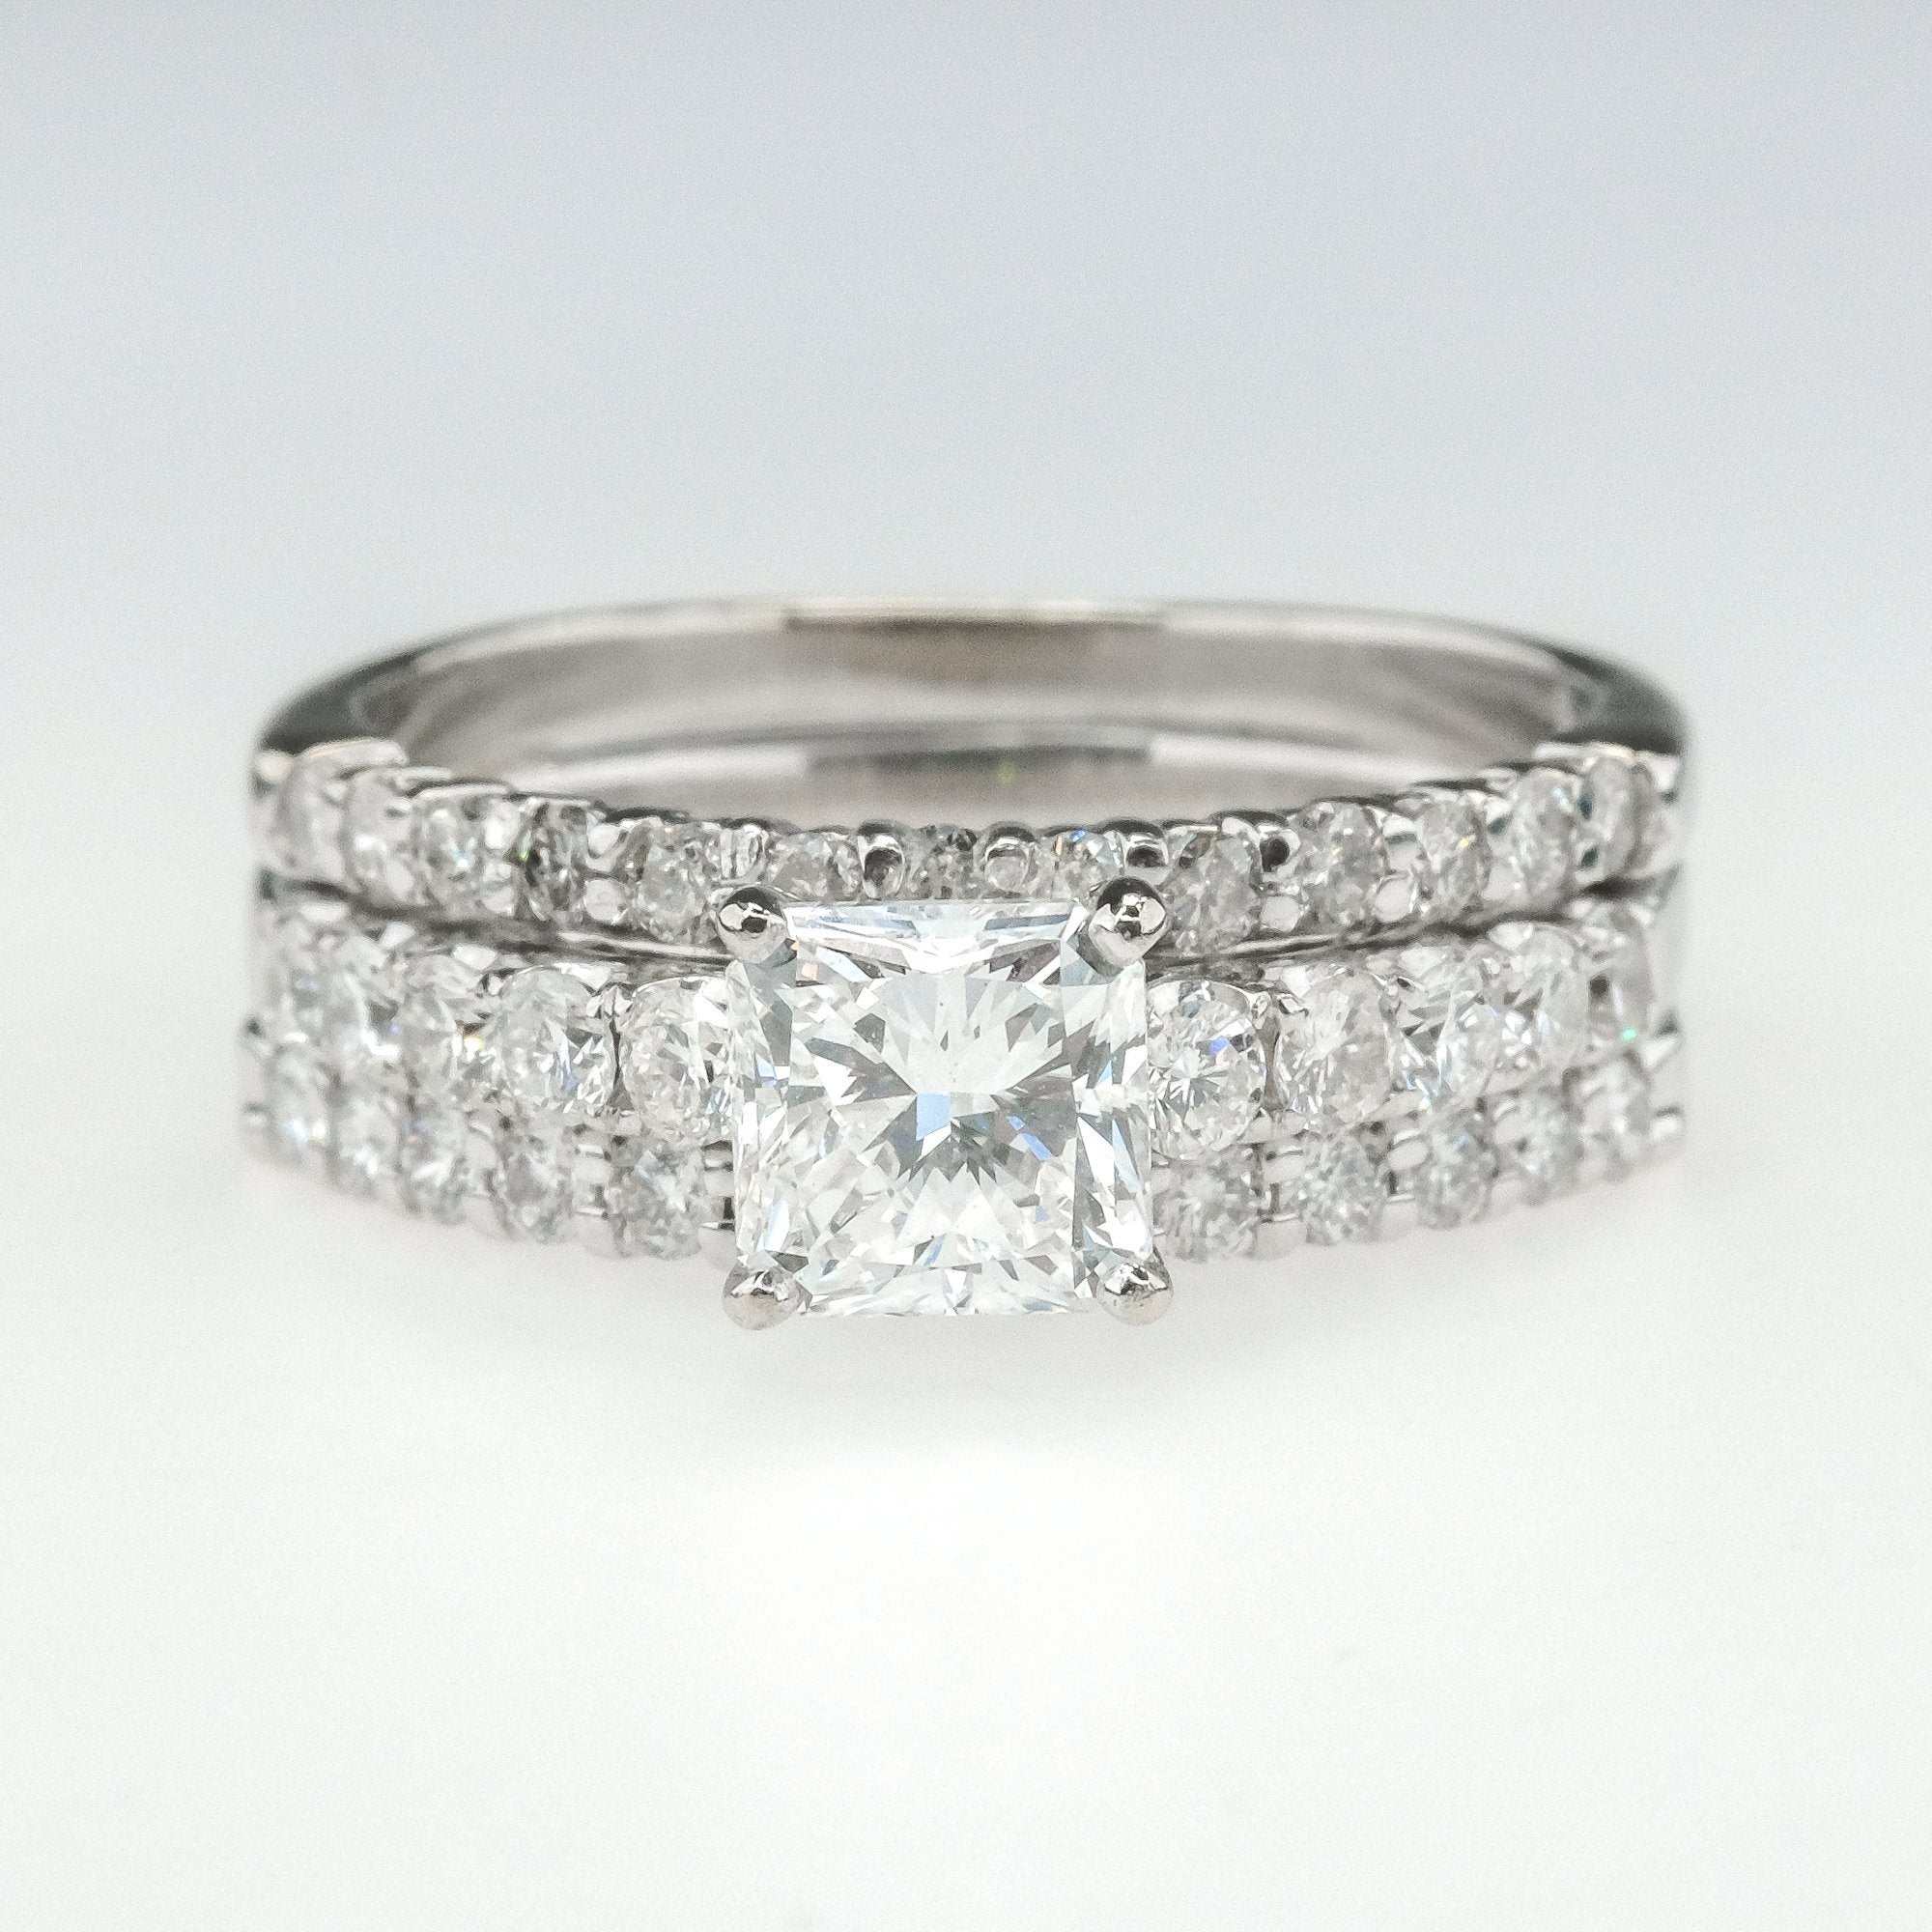 6.5mm Solitaire Engagement Ring 1.03 CTW CZ Stainless Steel Wave Ribbon Setting